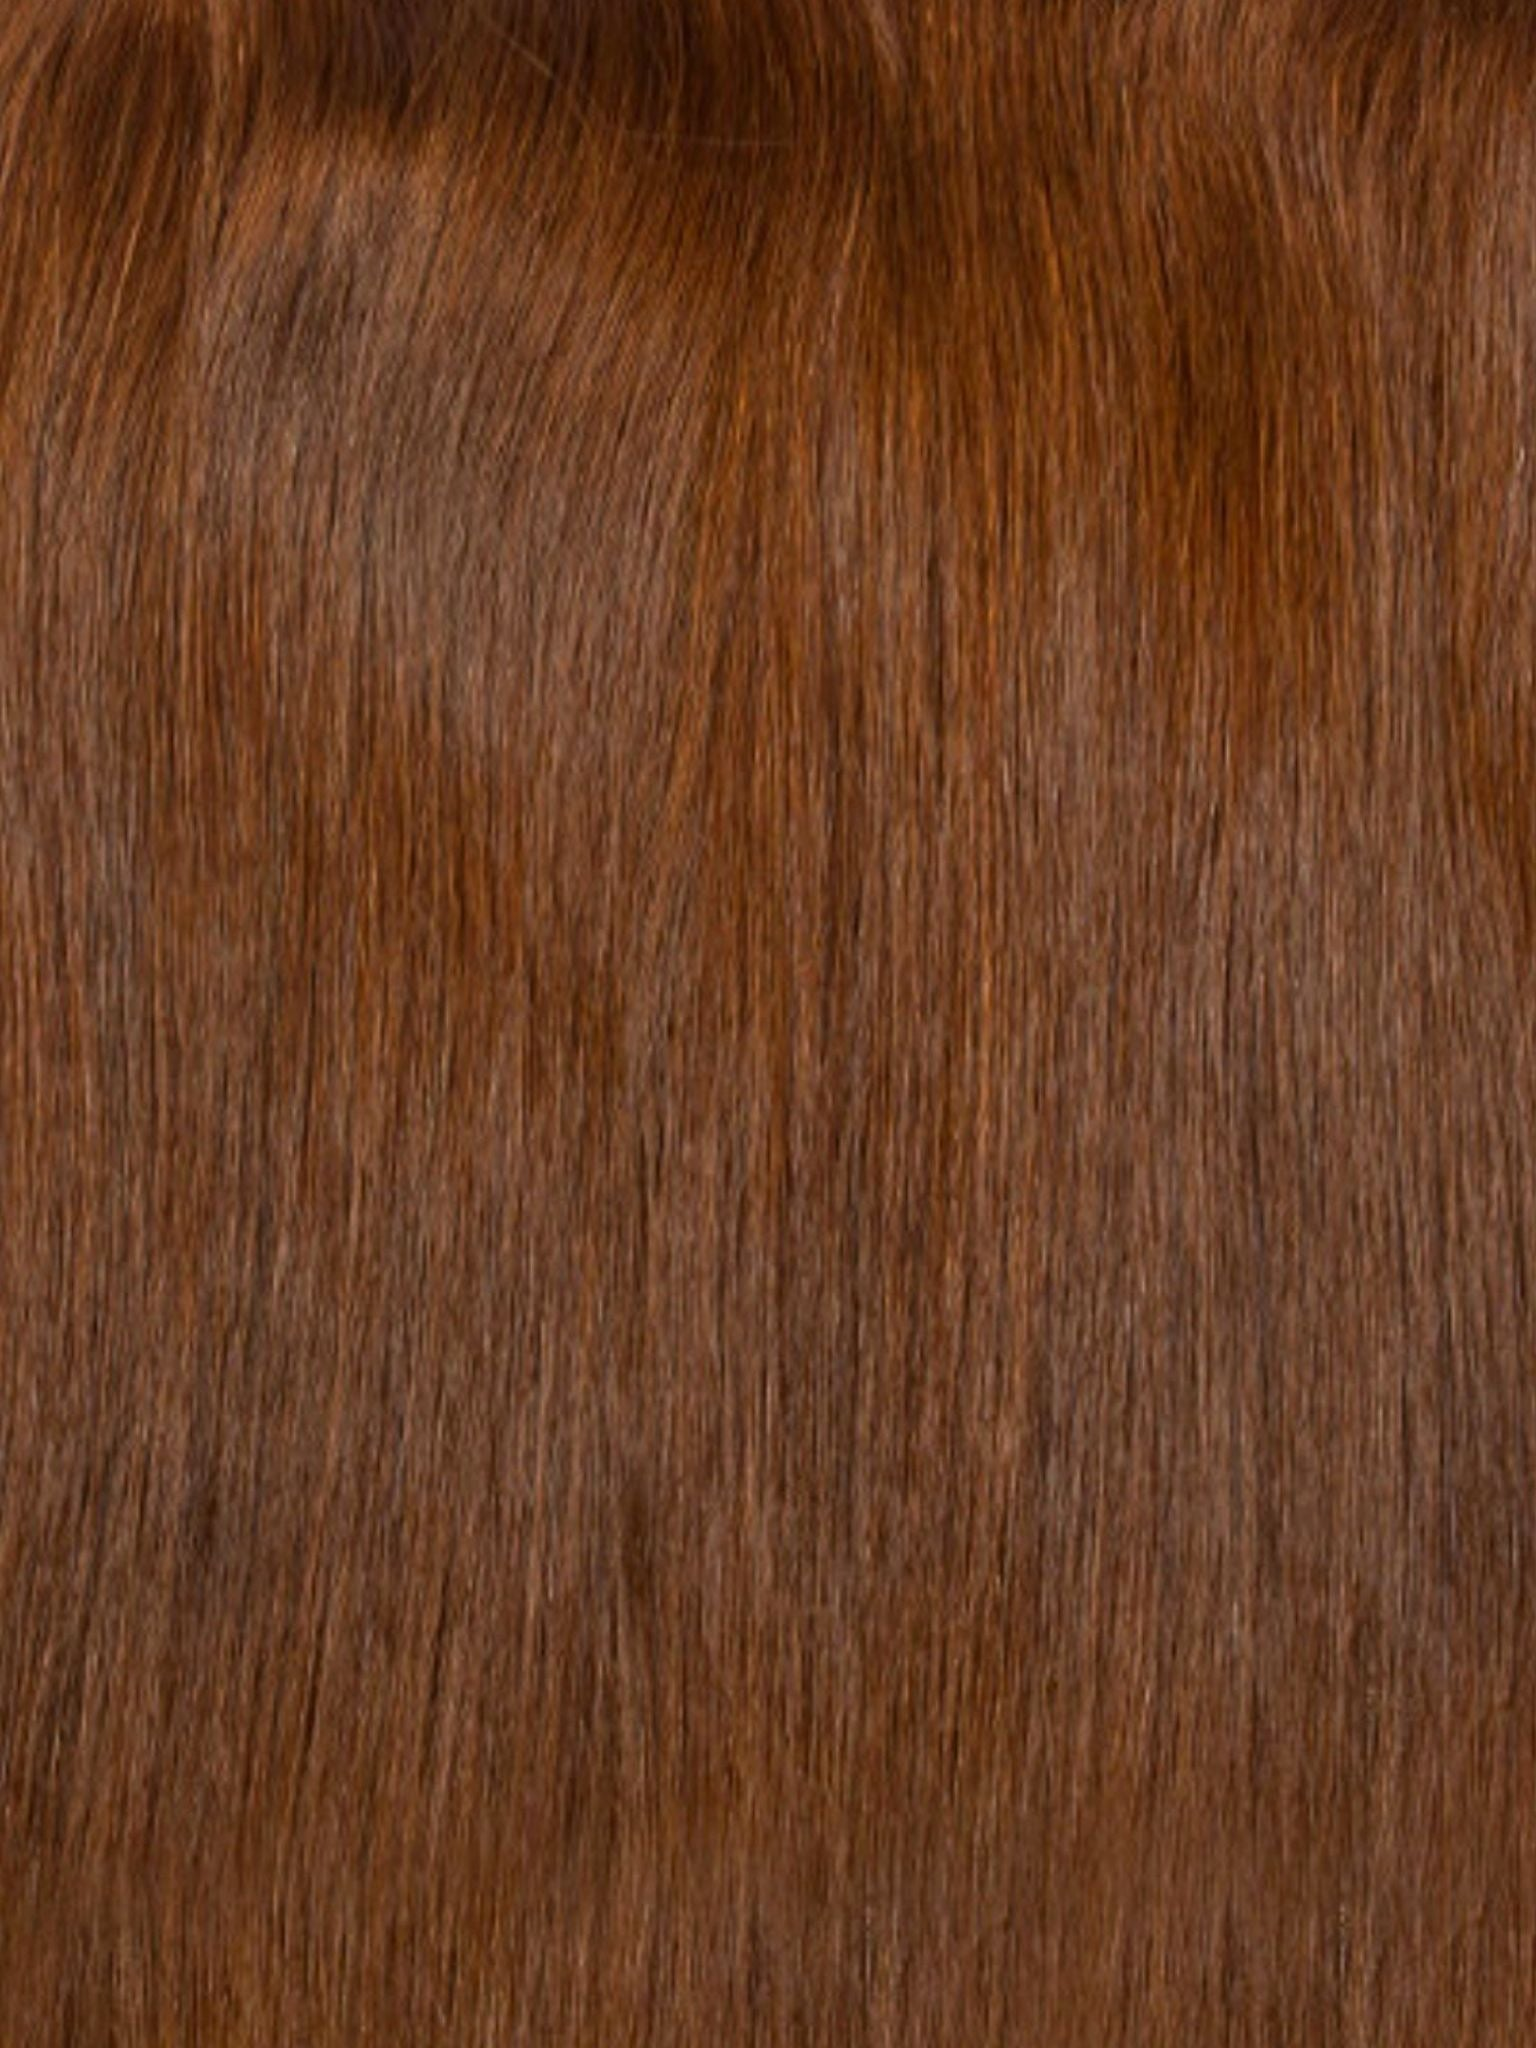 Clip-In Hair Extensions Chestnut Brown | Superior 180 Grams